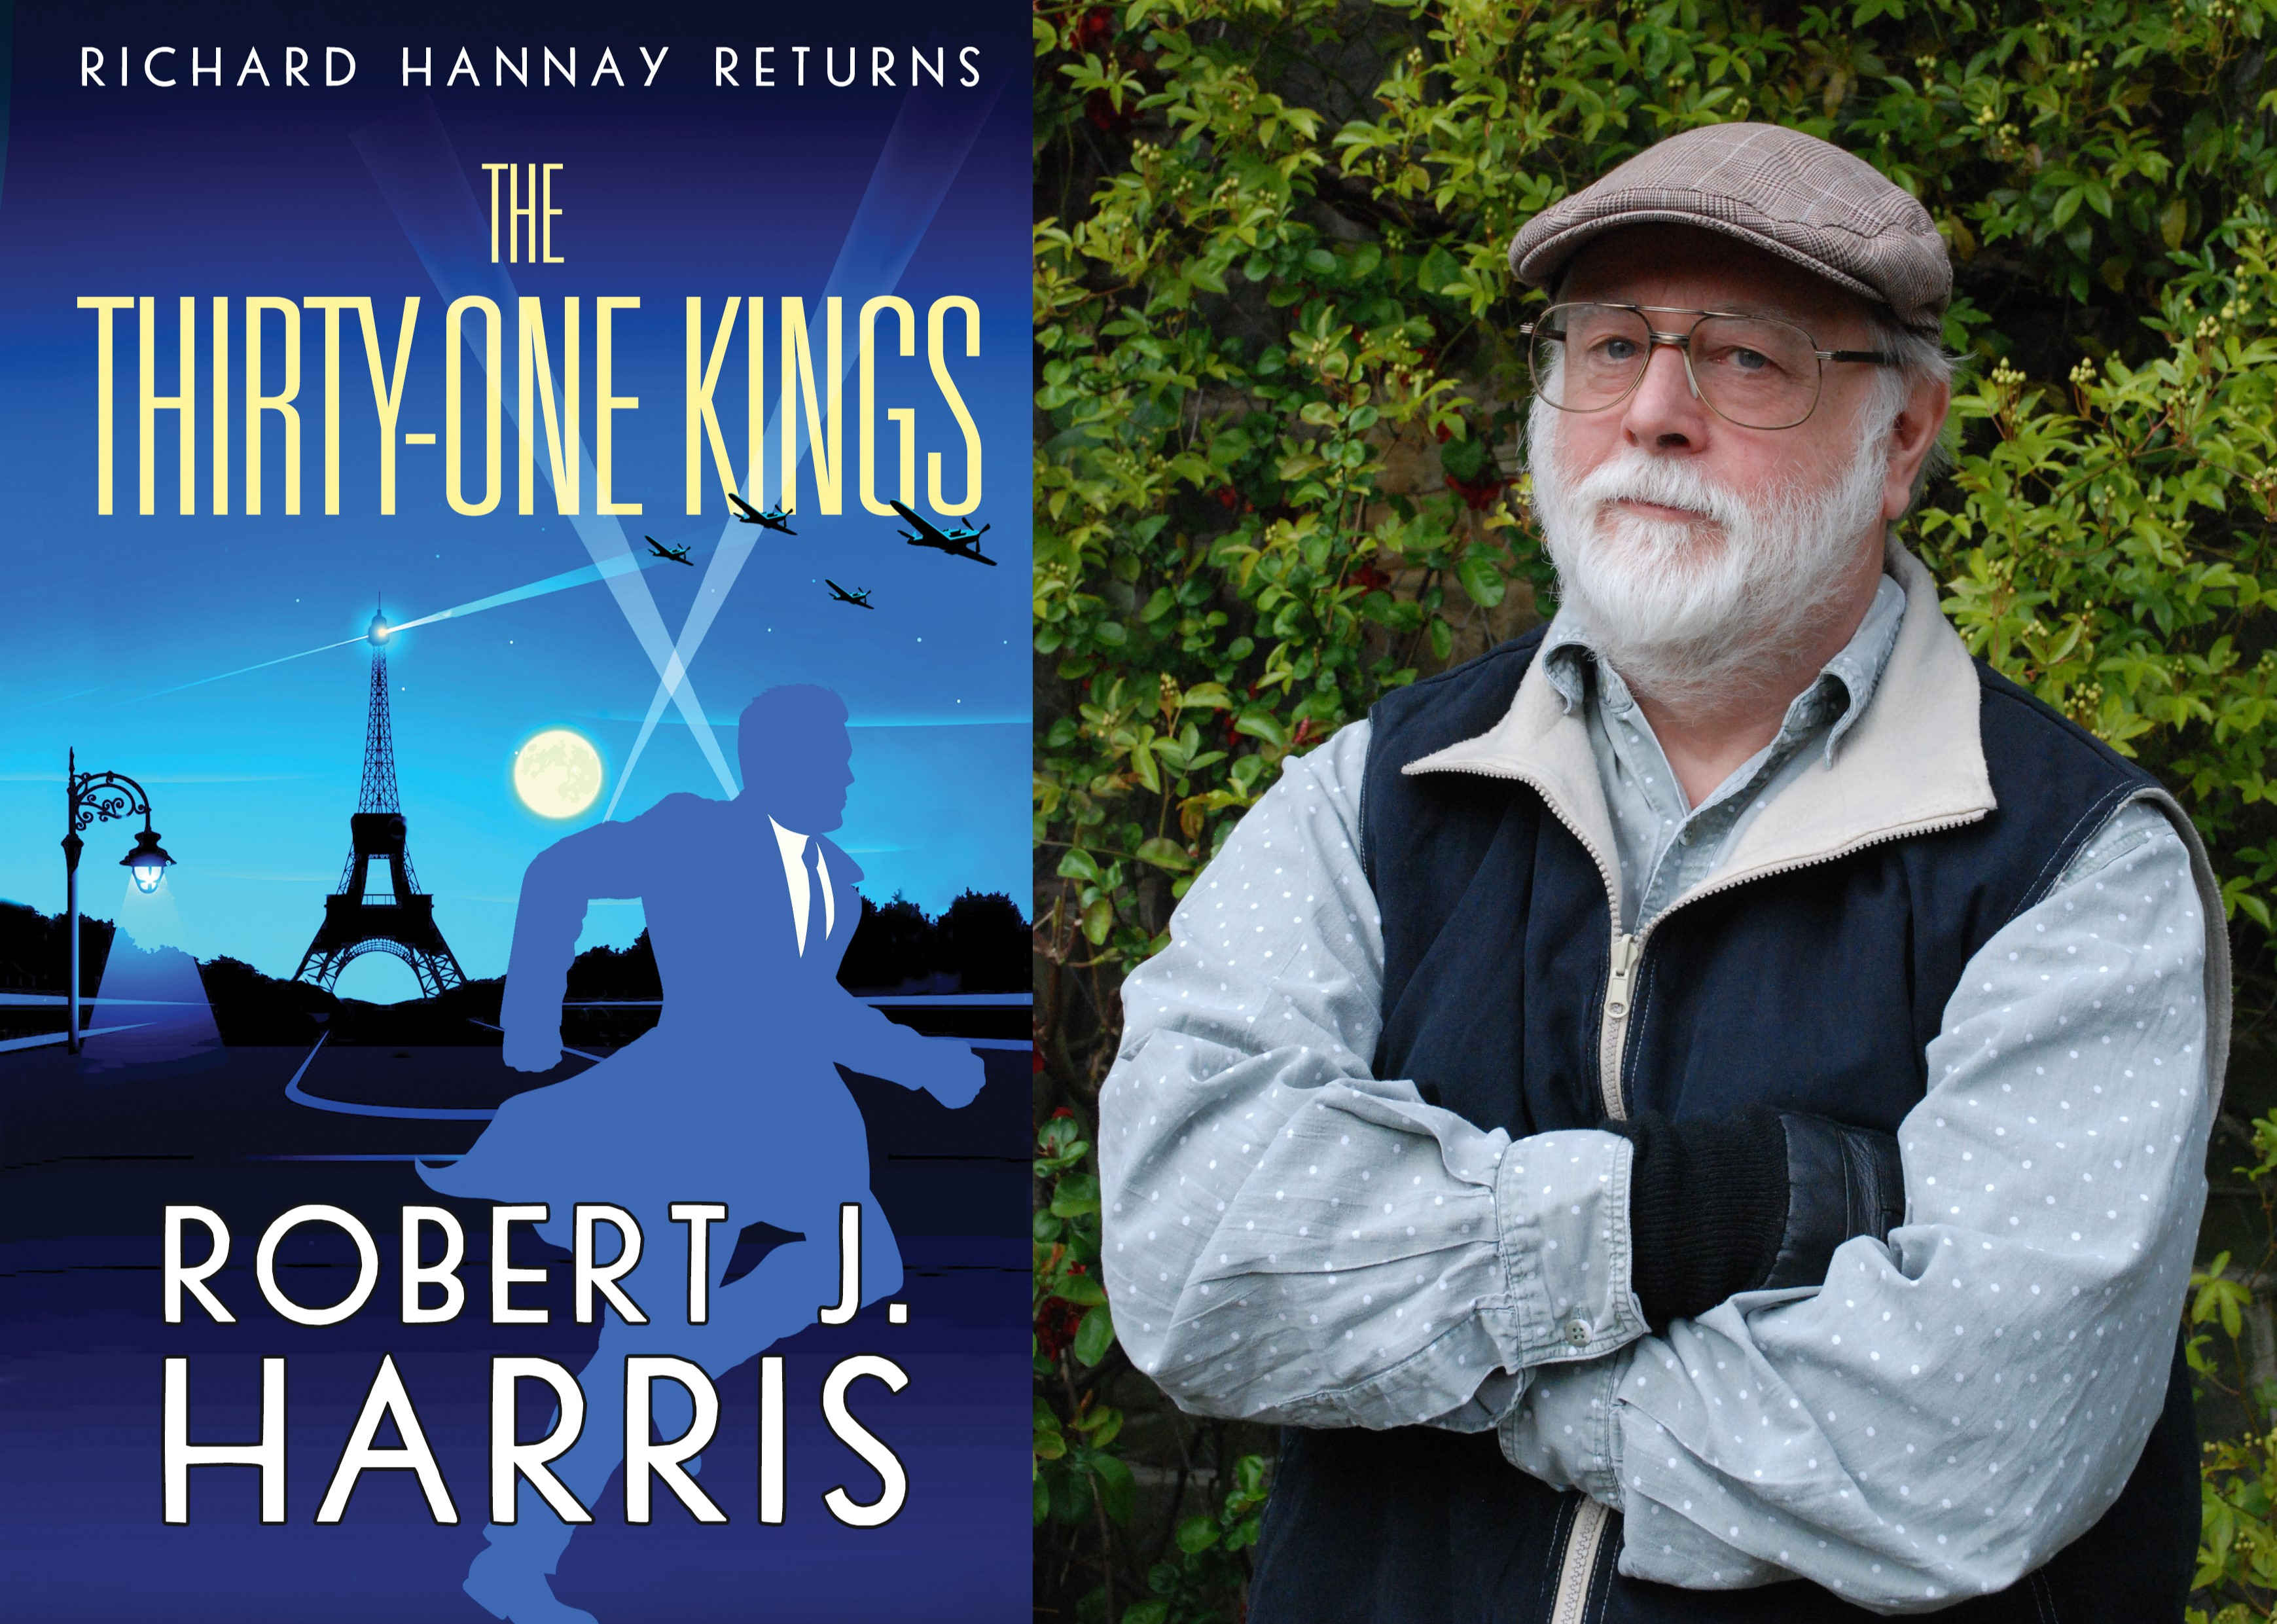 Image of Robert J. Harris with a new Richard Hannay Novel, The Thirty-One Kings